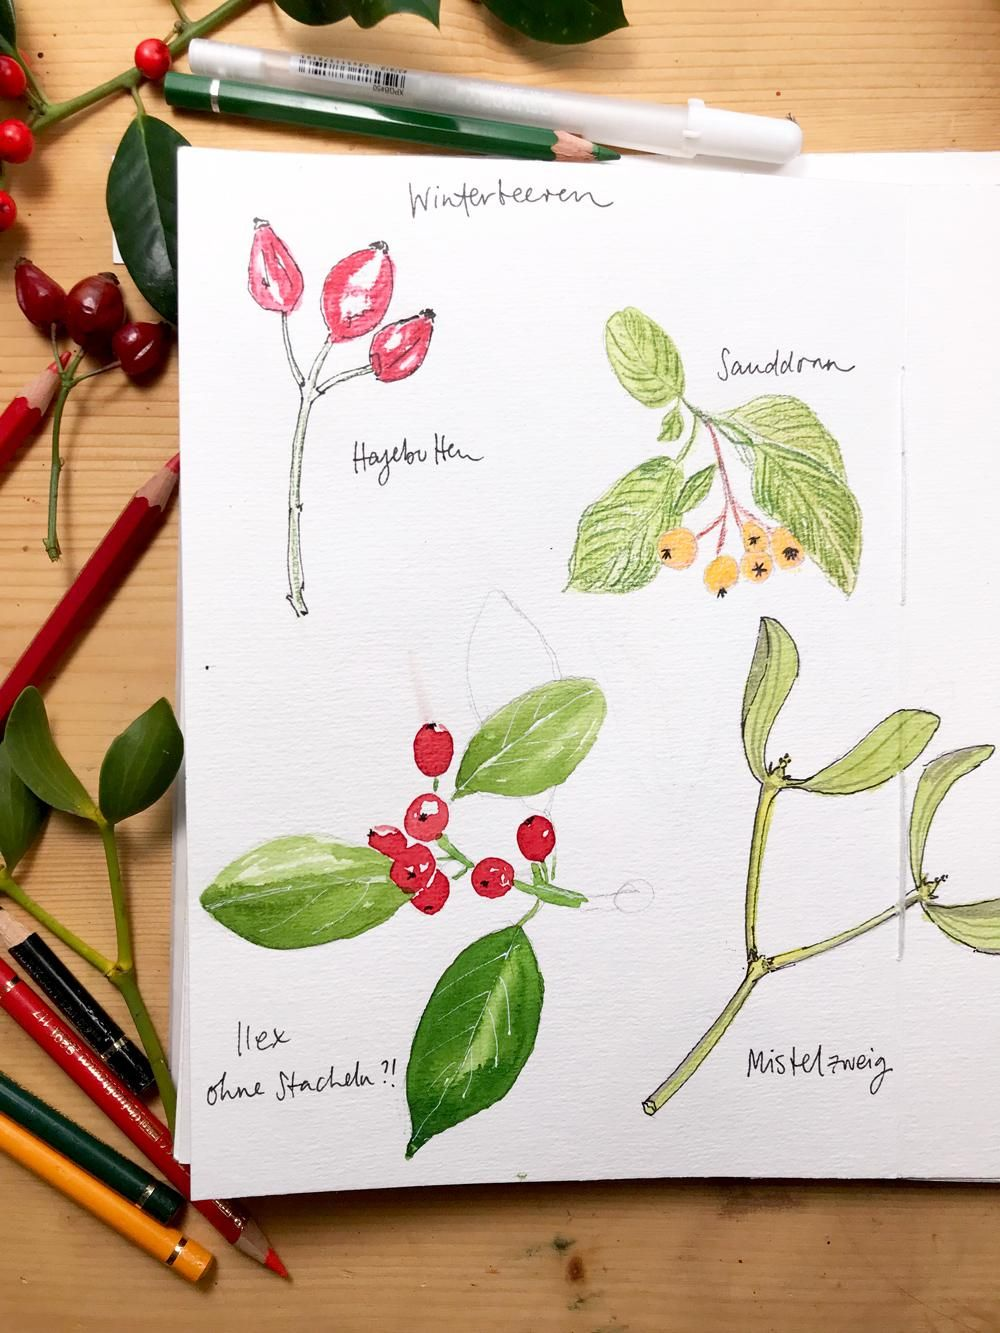 My nature sketchbook - image 2 - student project